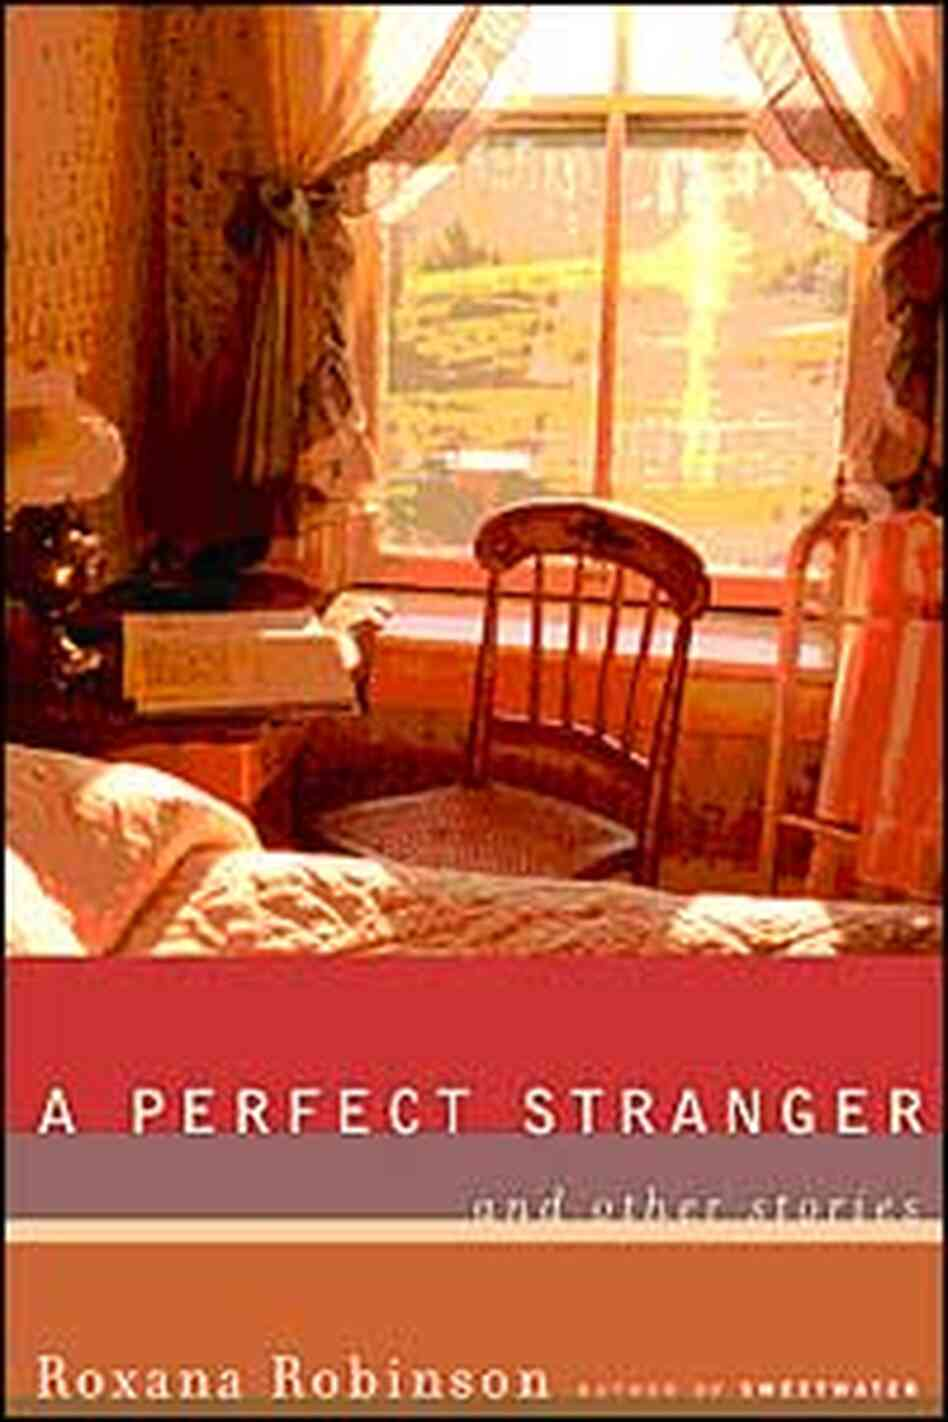 Cover image from 'A Perfect Stranger'